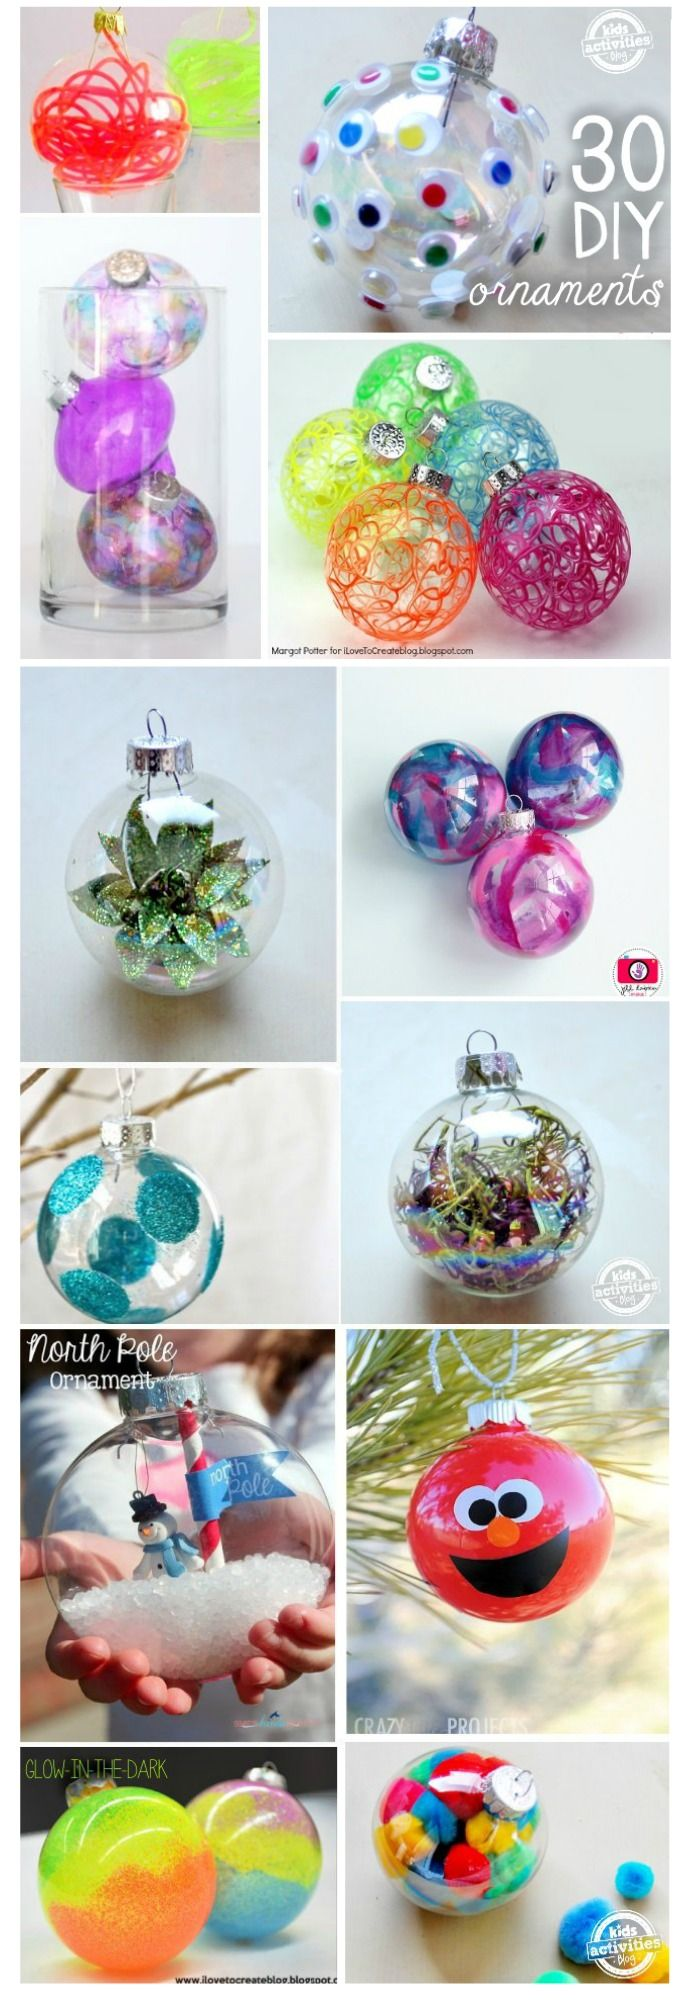 30 ways to fill ornaments glass christmas ornaments kid